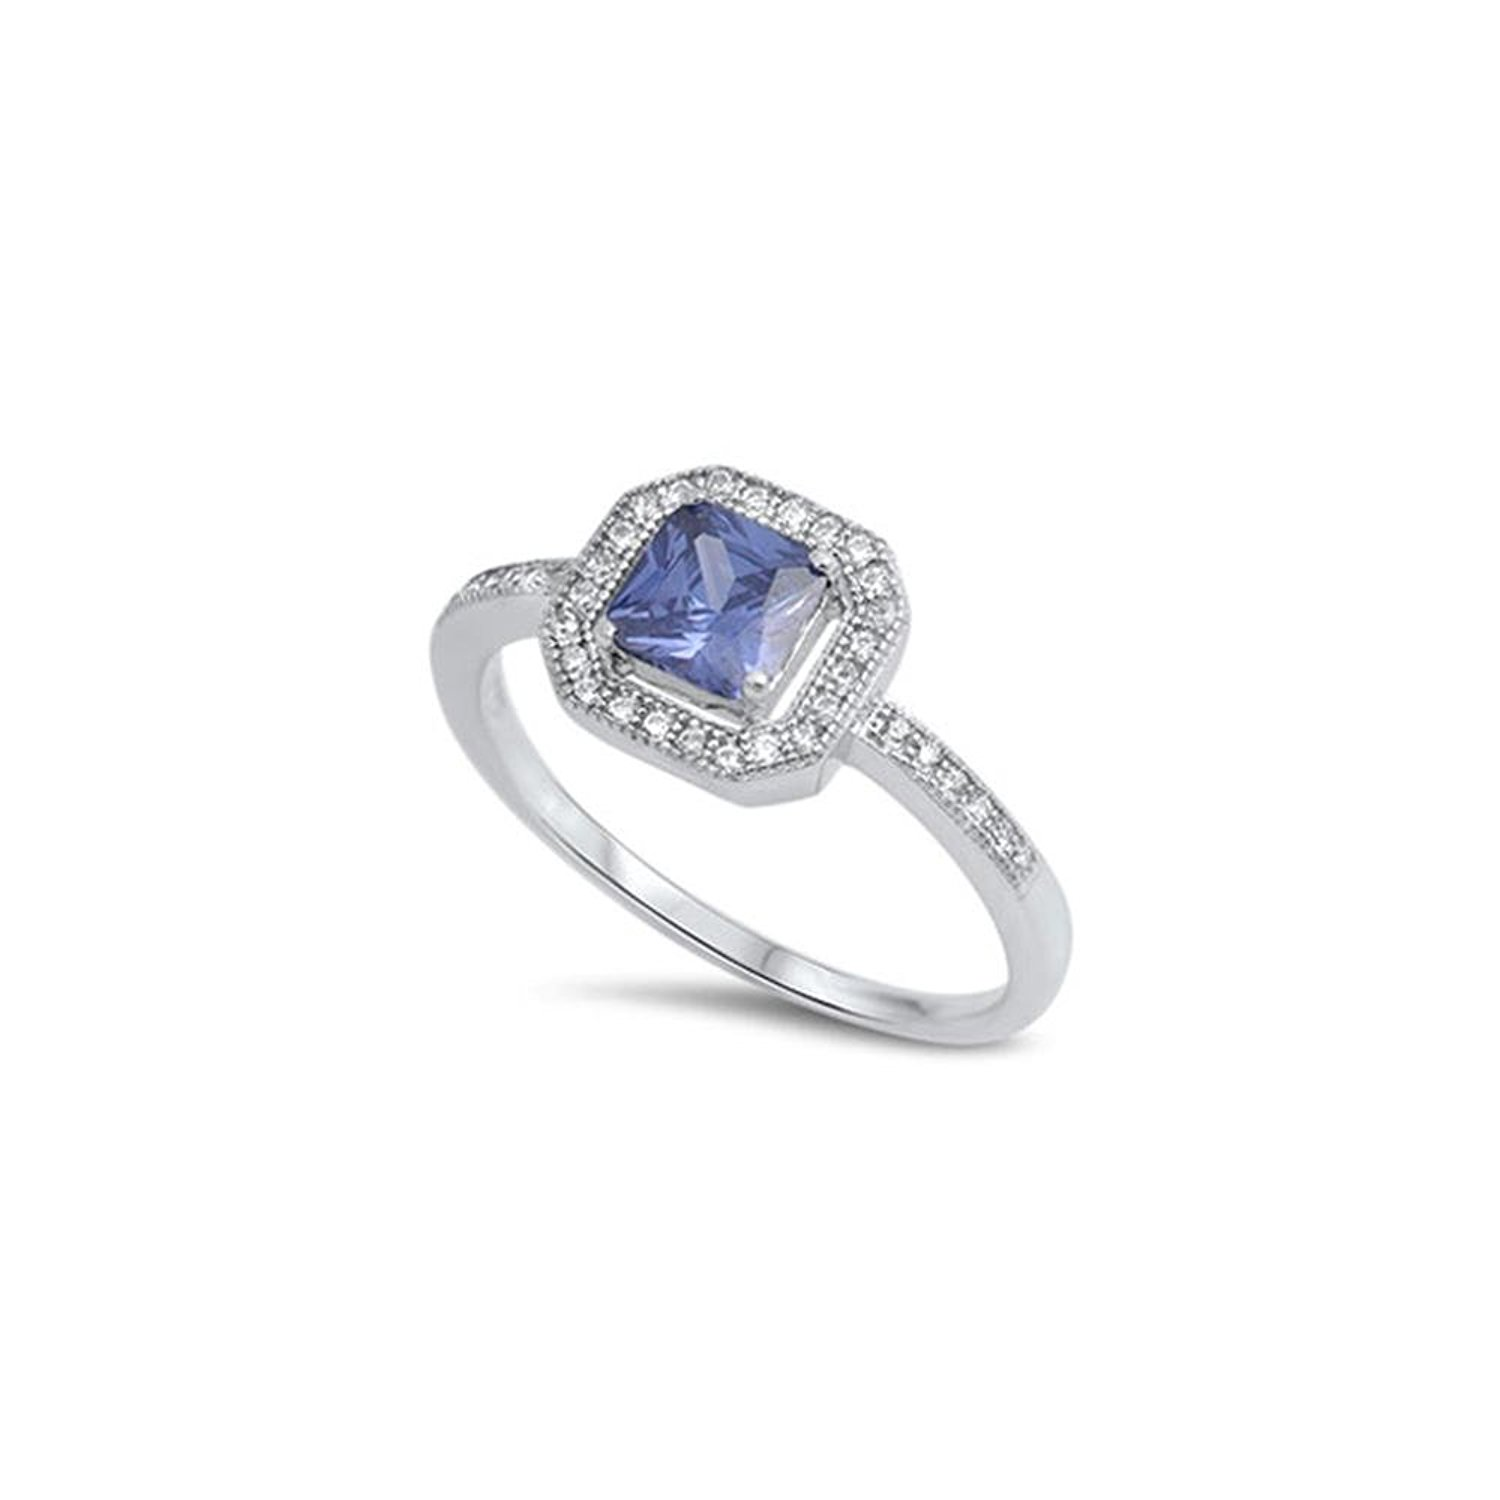 Noureda Sterling Silver Classy Princess Cut Tanzanite Cz with Pave Halo Setting Ring, Face Height of 6MM, Band Width: 2MM